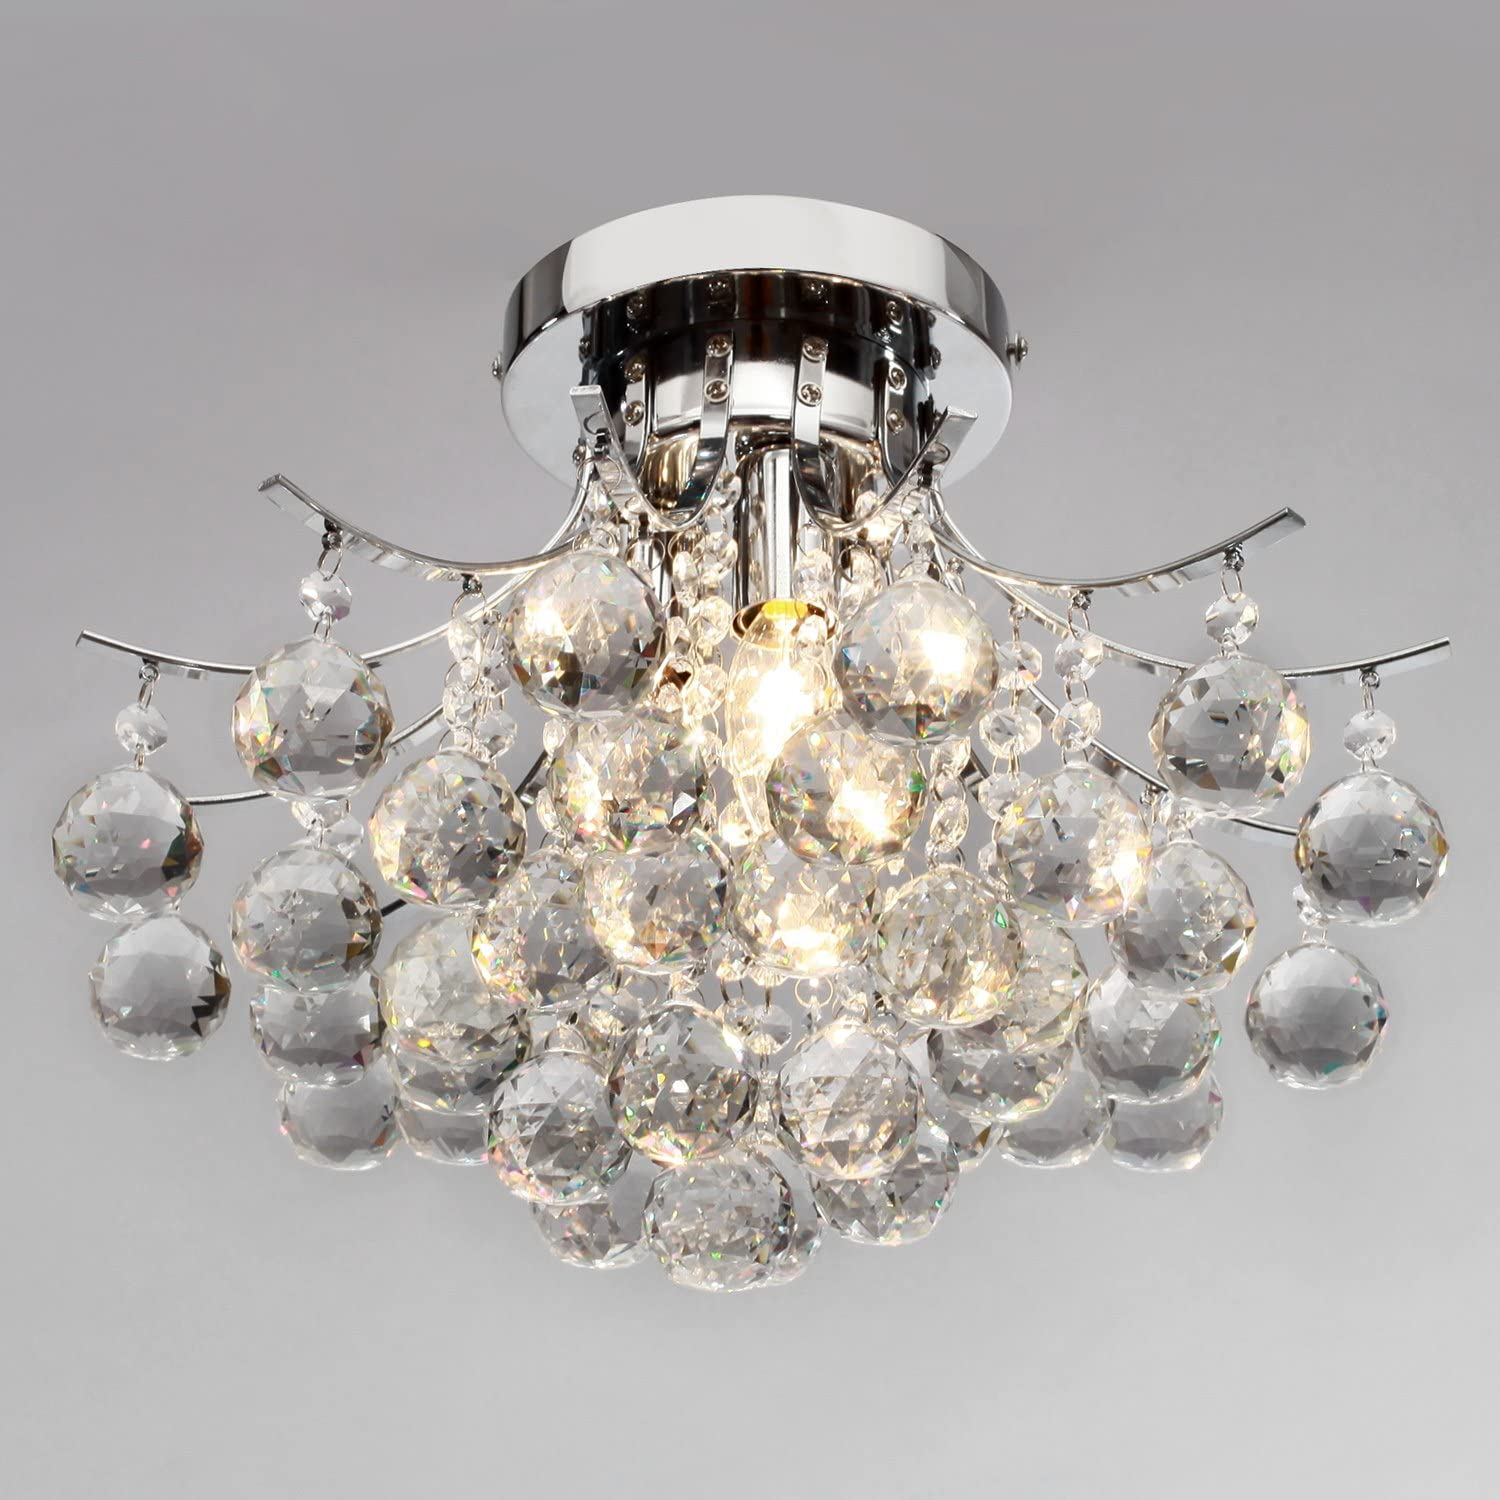 LightInTheBox 00218363 Chrome Finish Crystal Chandelier with 3 lights